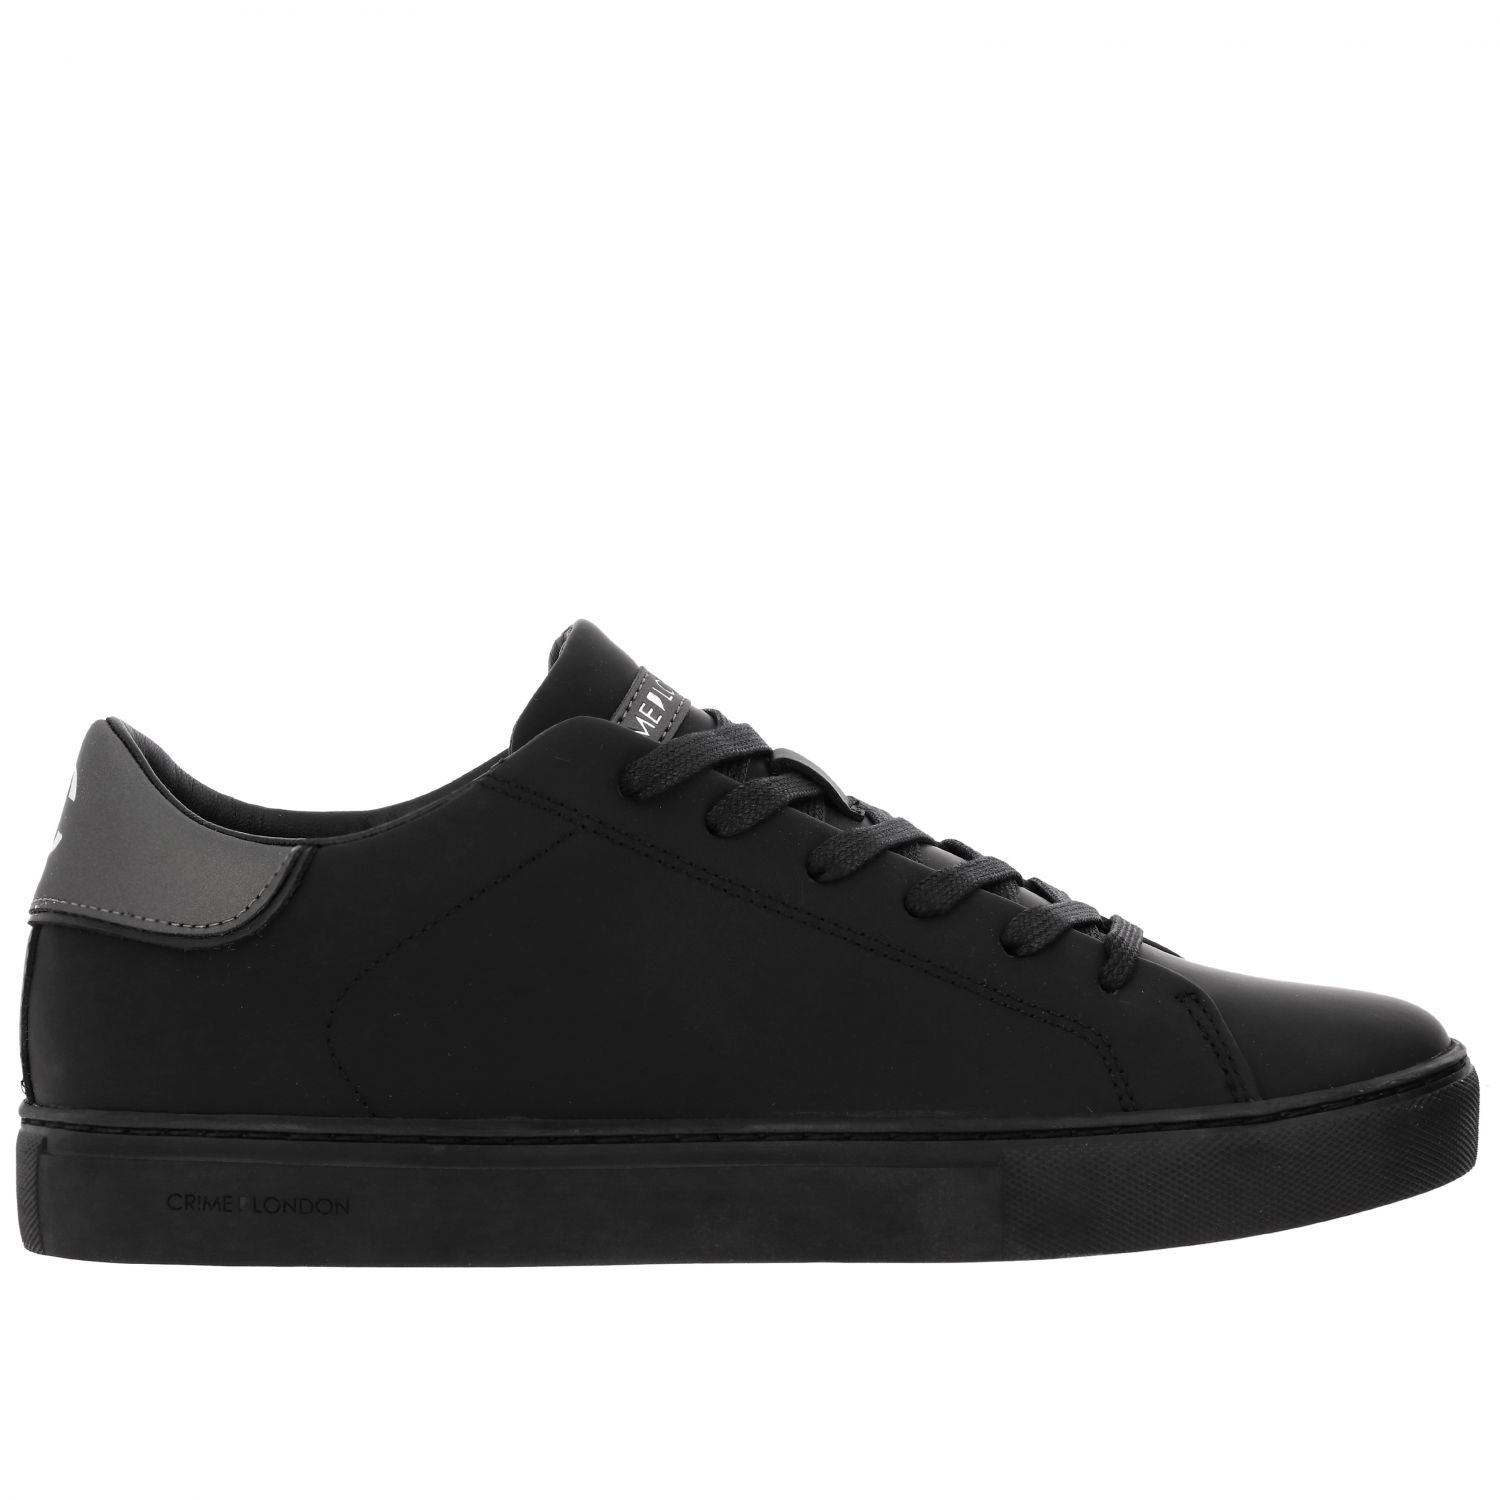 Sneakers Crime London: Shoes men Crime London black 1